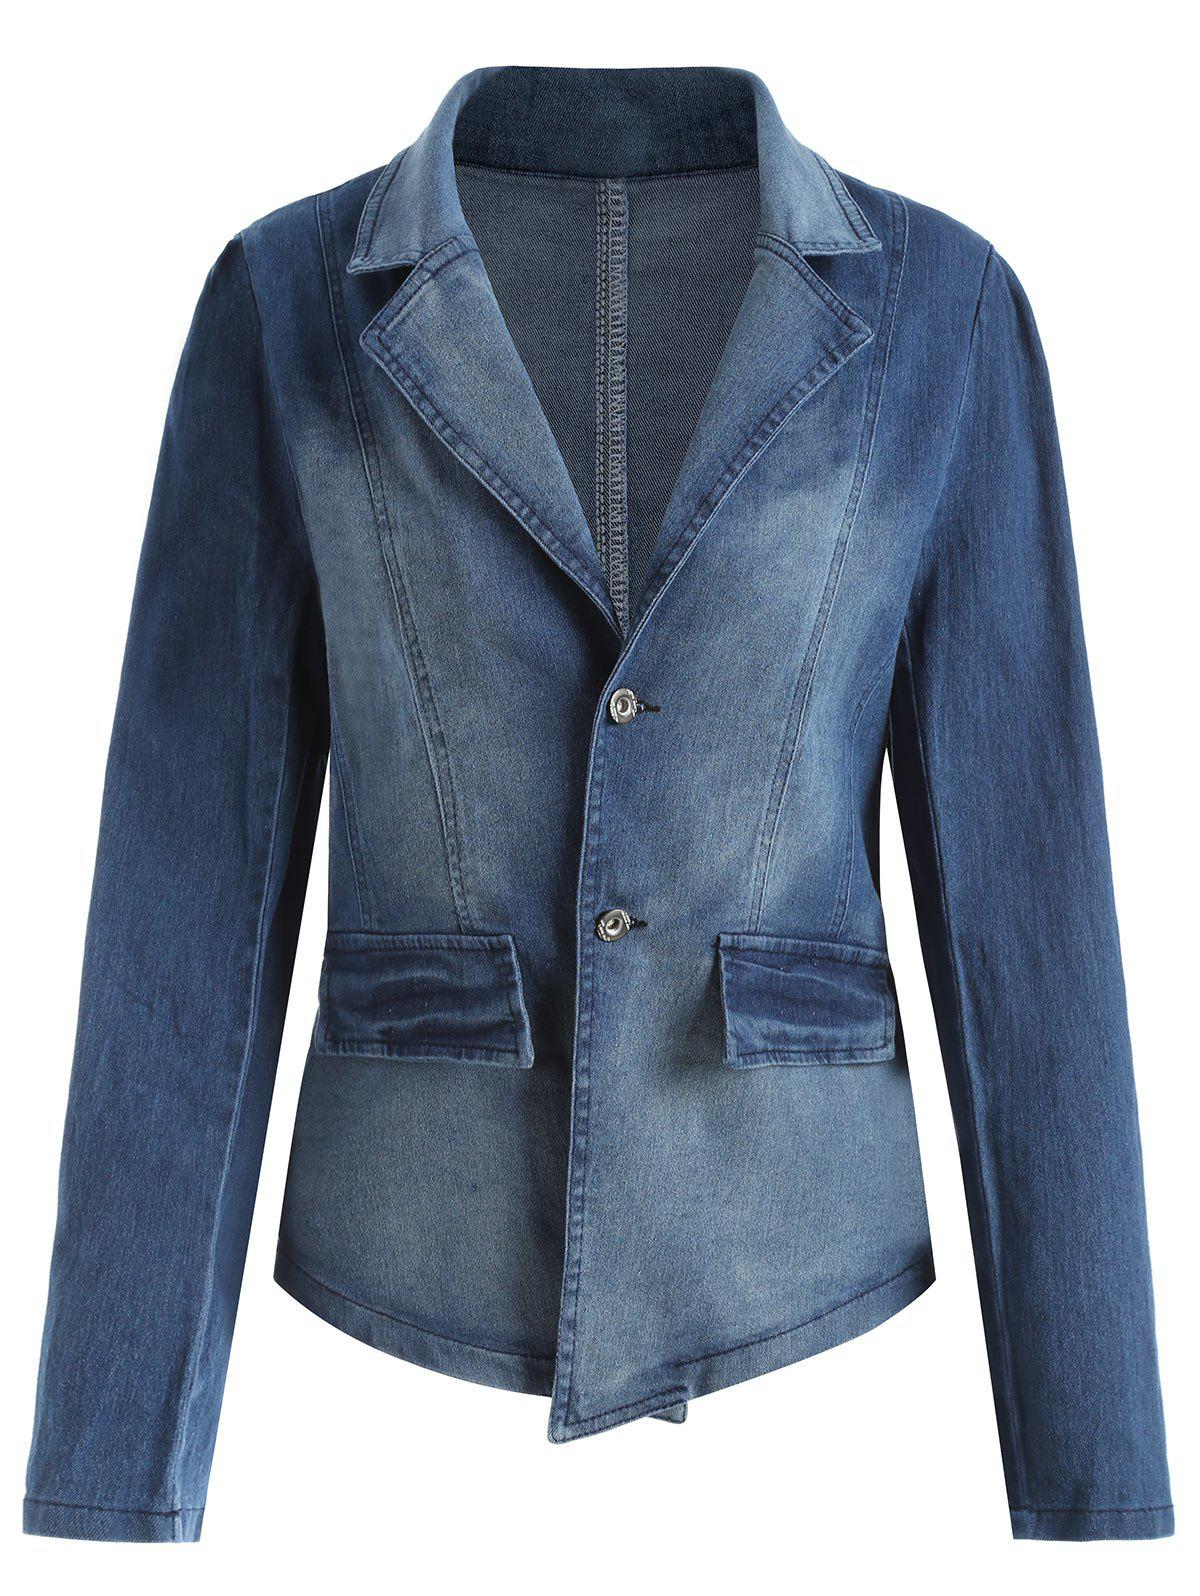 Lapel Plus Size Denim JacketWOMEN<br><br>Size: 4XL; Color: DENIM BLUE; Clothes Type: Jackets; Material: Polyester; Type: Slim; Shirt Length: Regular; Sleeve Length: Full; Collar: Lapel; Closure Type: Single Breasted; Pattern Type: Solid; Style: Casual; Season: Fall,Spring,Winter; With Belt: No; Weight: 0.5500kg; Package Contents: 1 x Jacket;